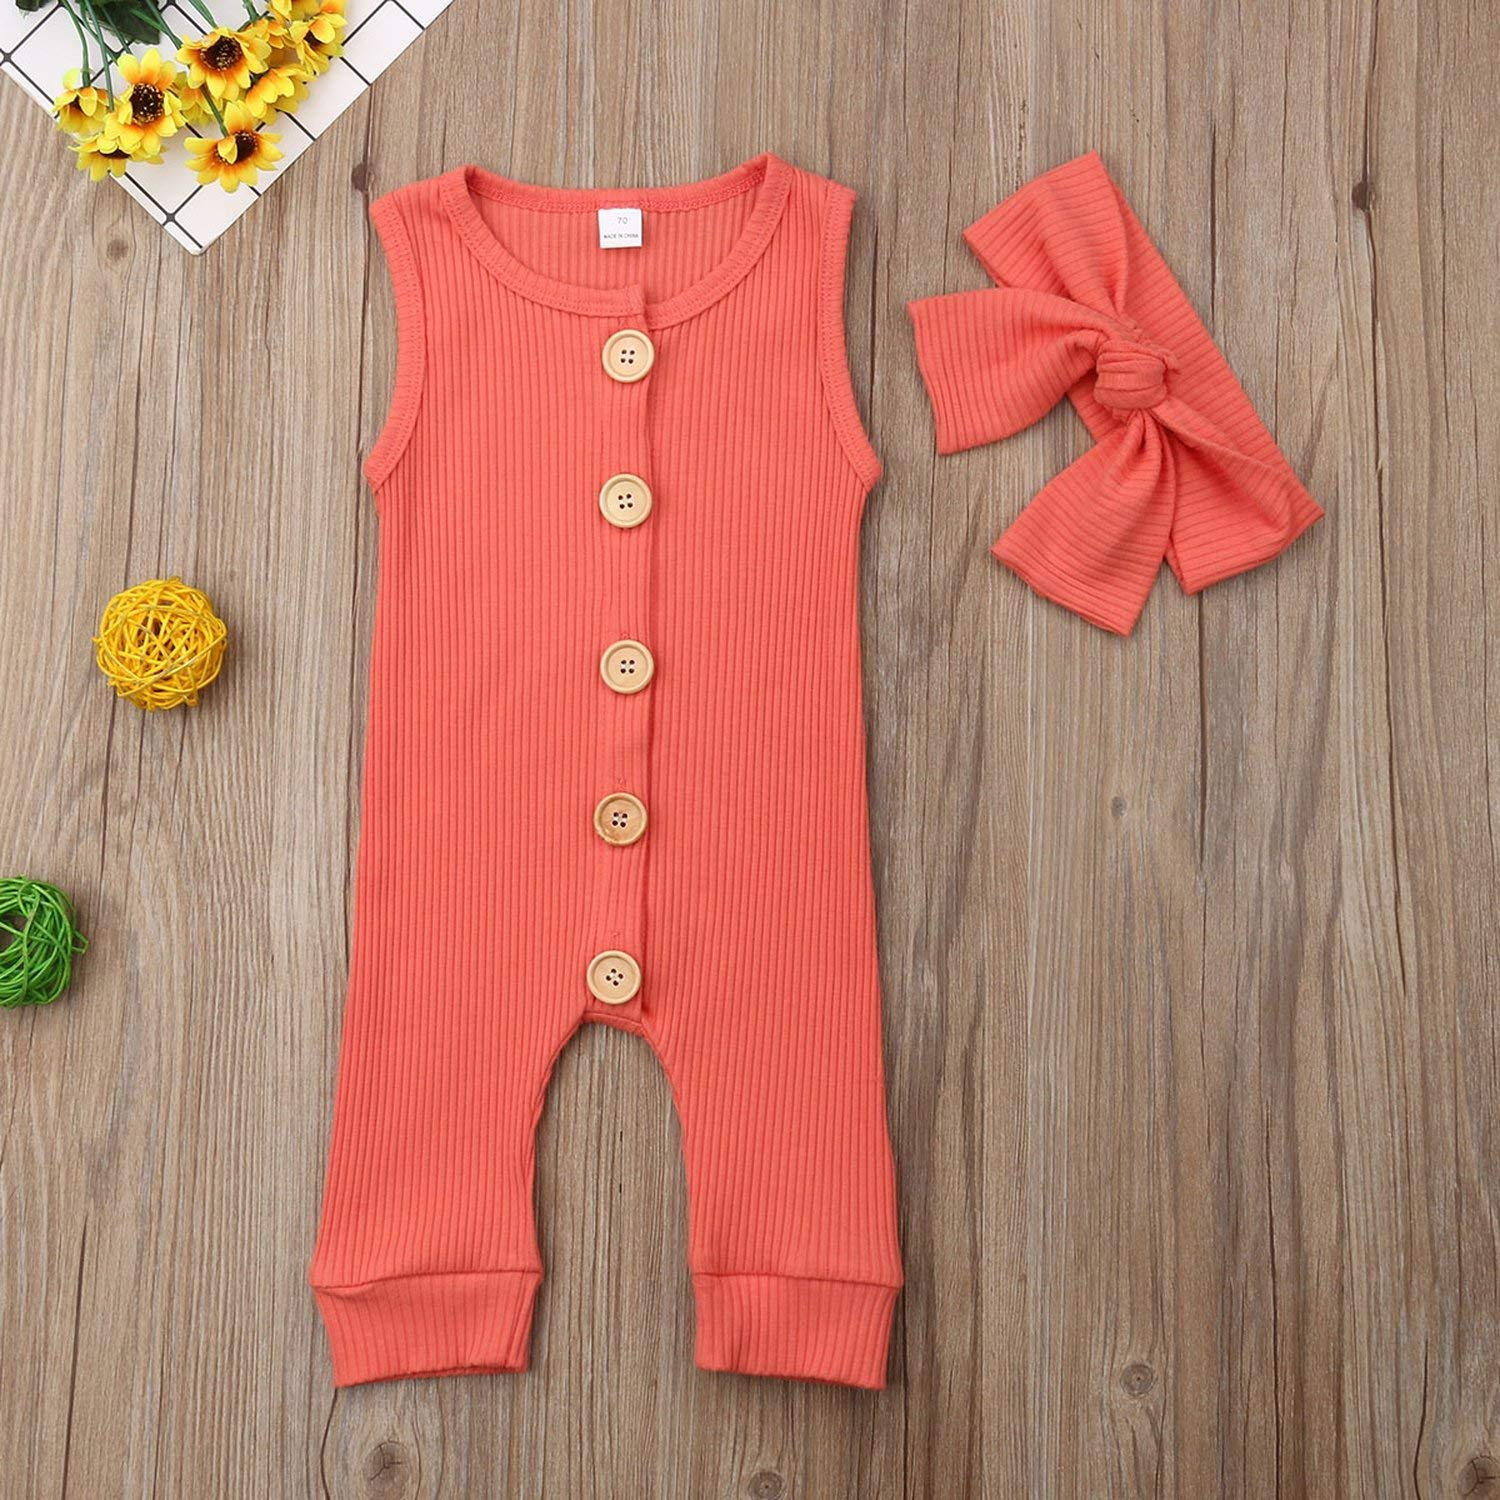 Headband Ribbed Jumpsuit Baby Girls Romper Newborn Infant Baby Girl Boy 2Pcs Outfit Solid Romper